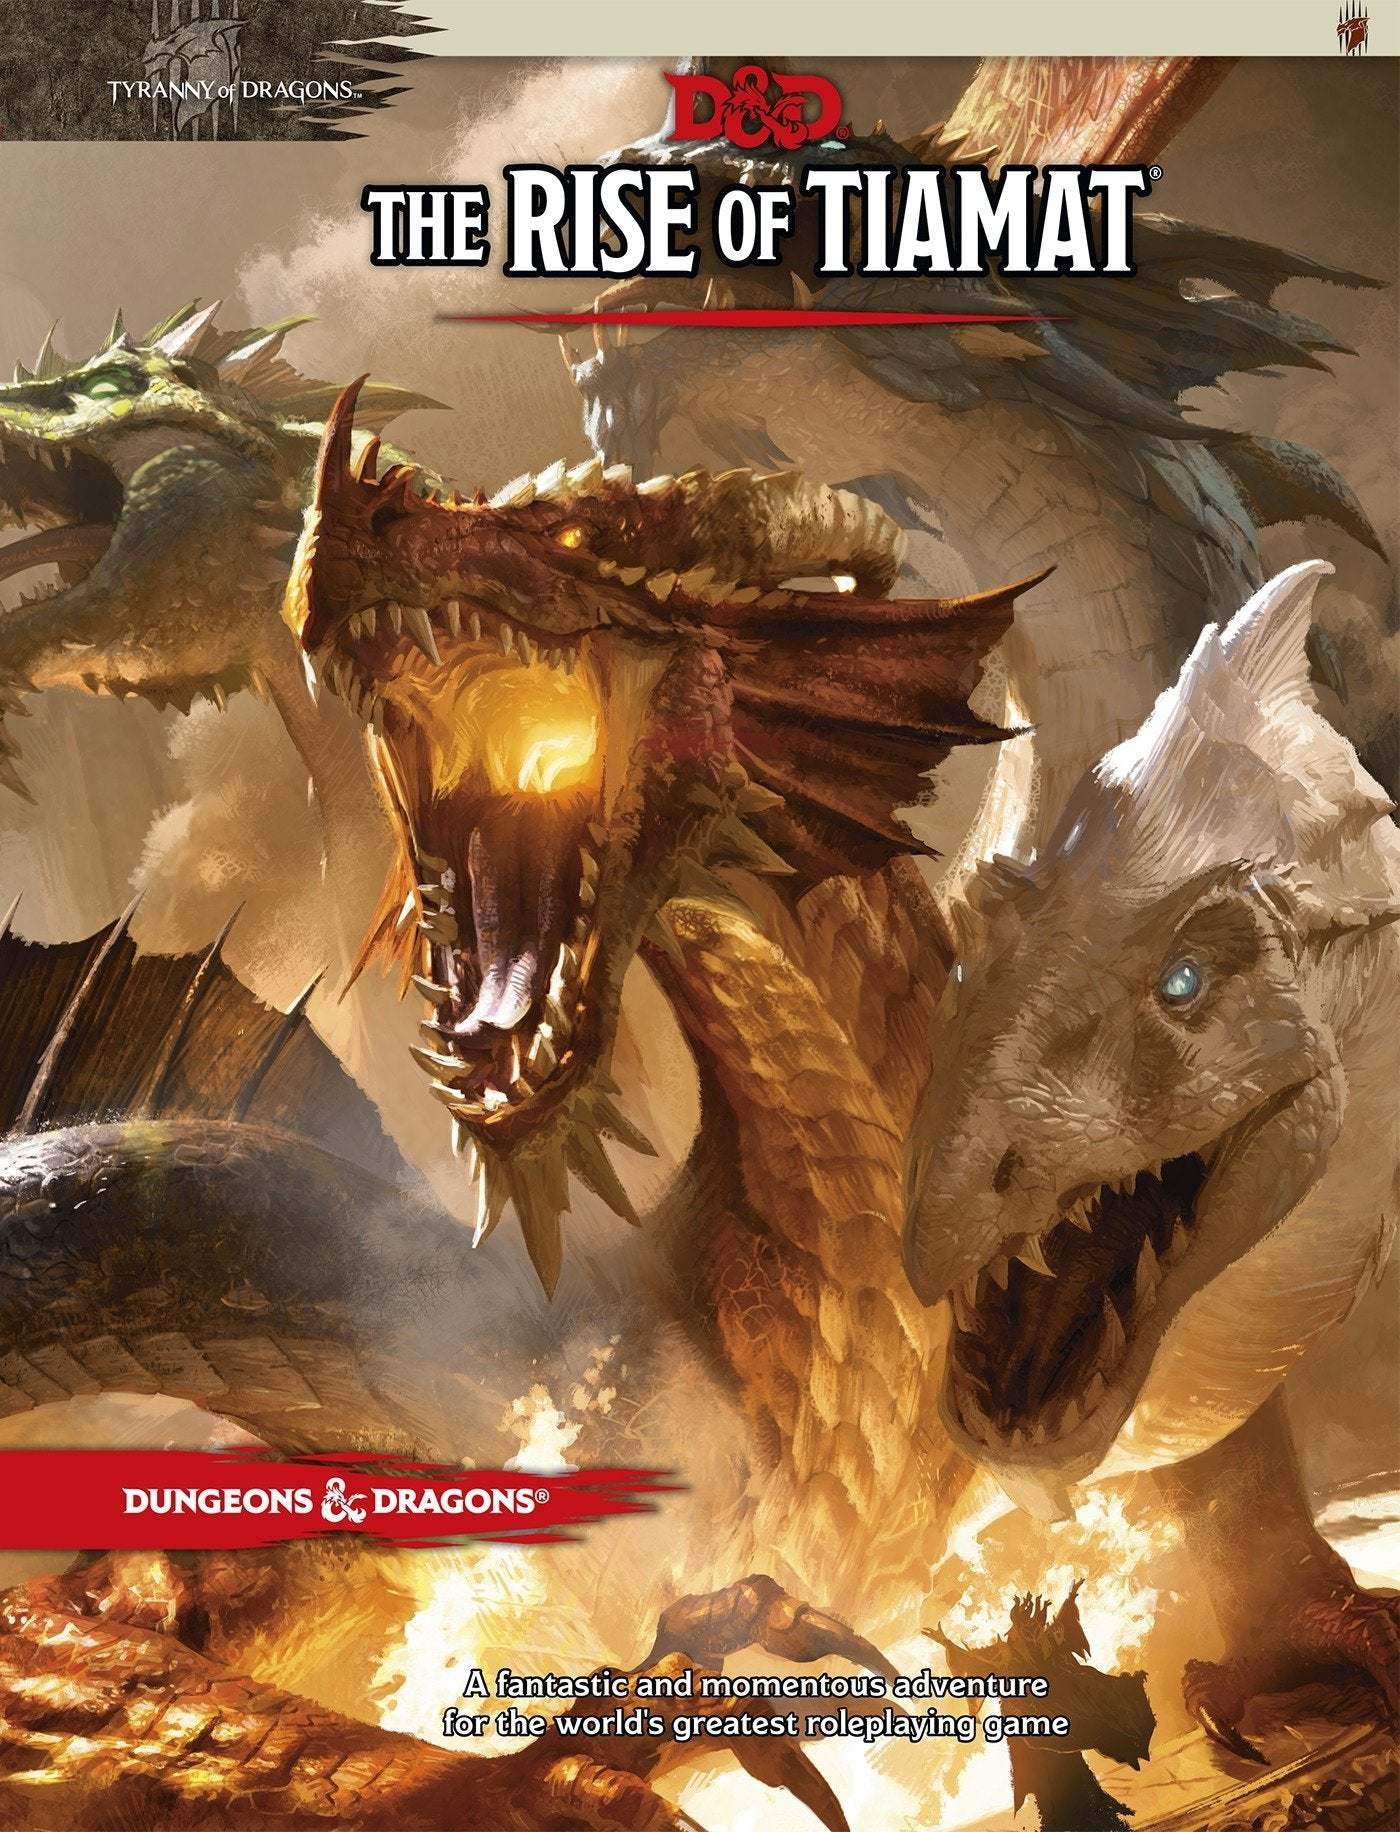 Dungeons & Dragons: The Rise of Tiamat | Mythicos